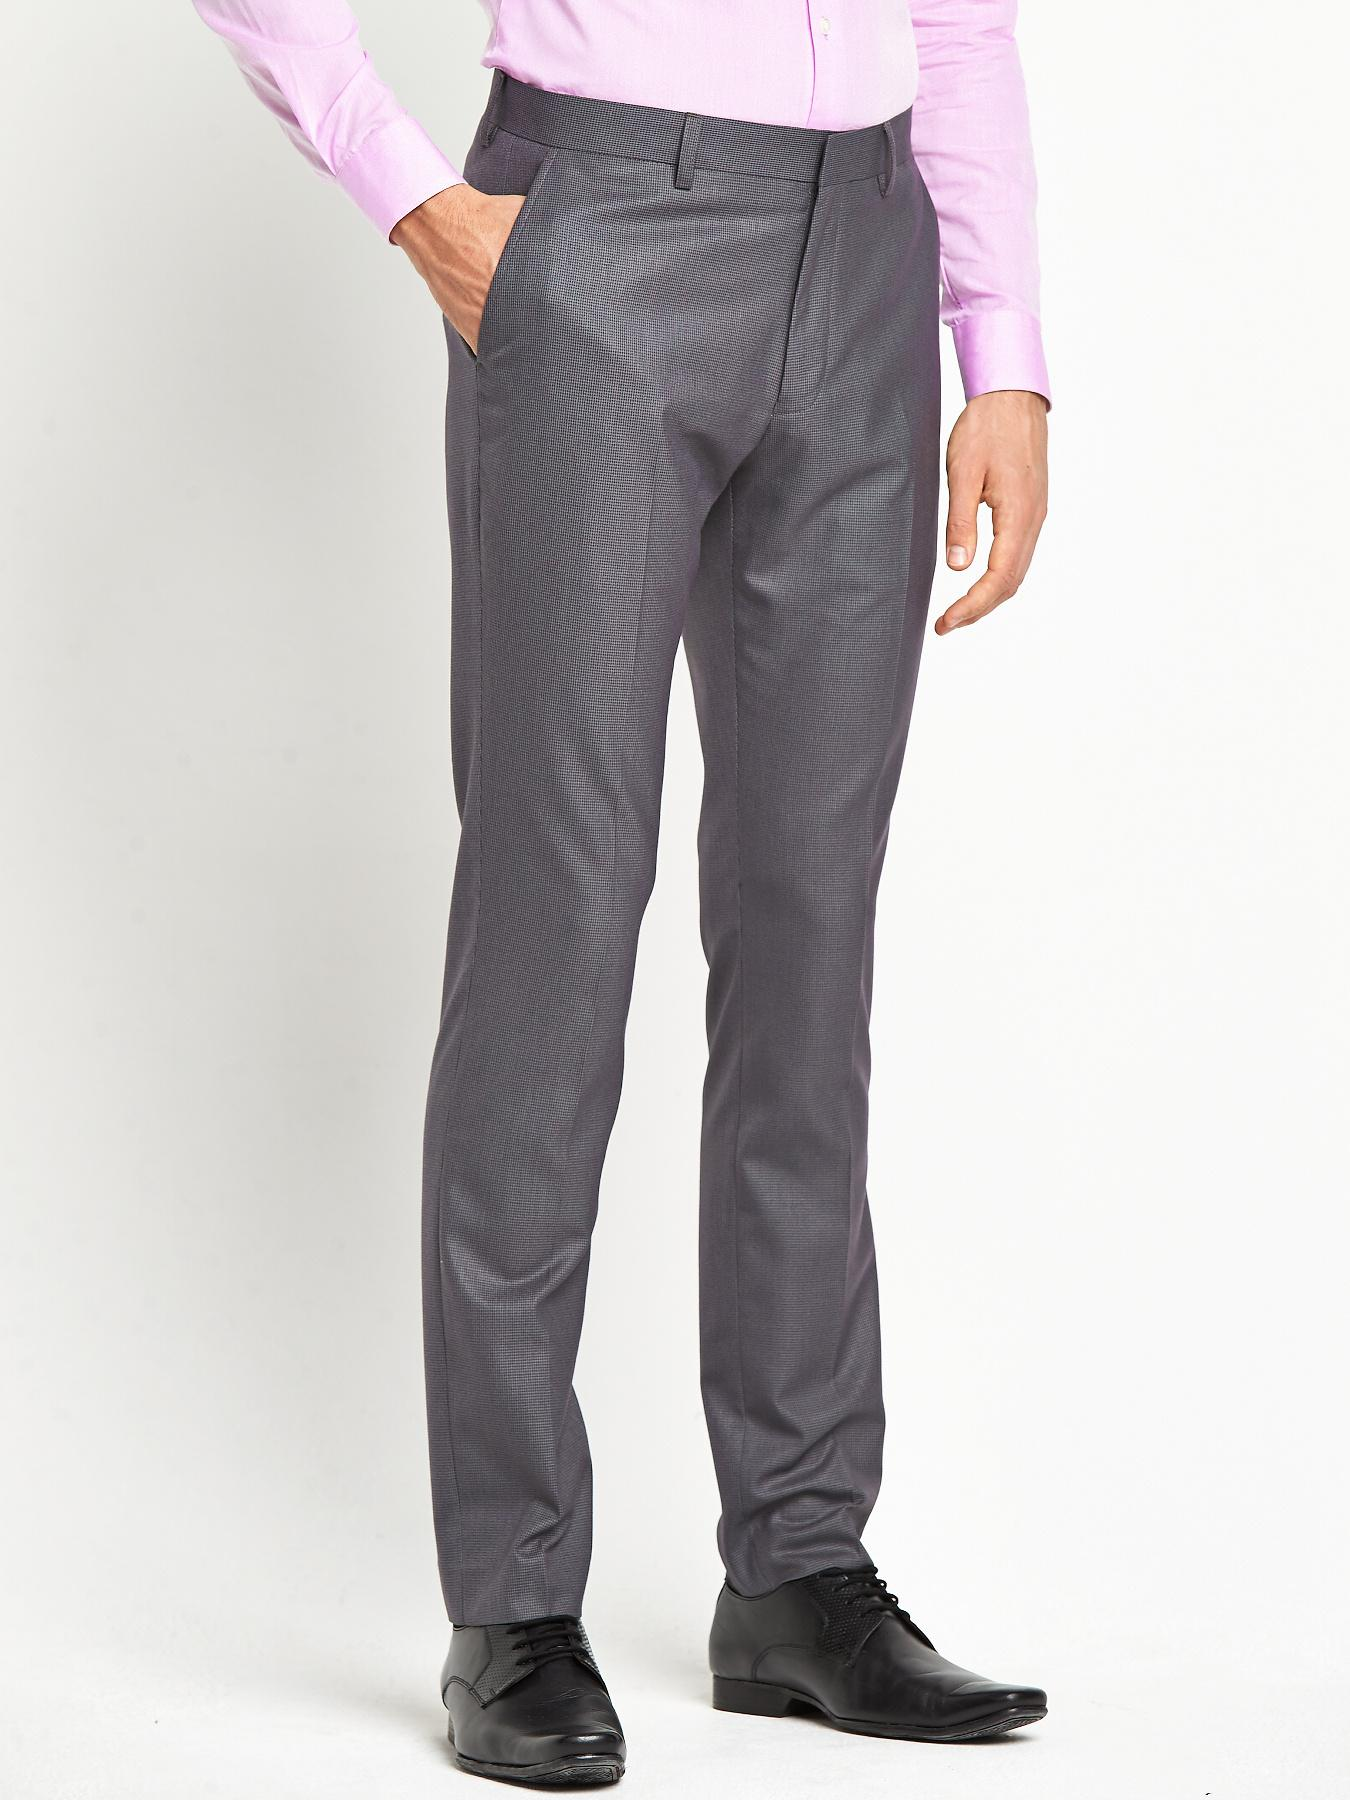 Taylor & Reece Mens Skinny Fit Puppytooth PV Trousers - Grey, Grey